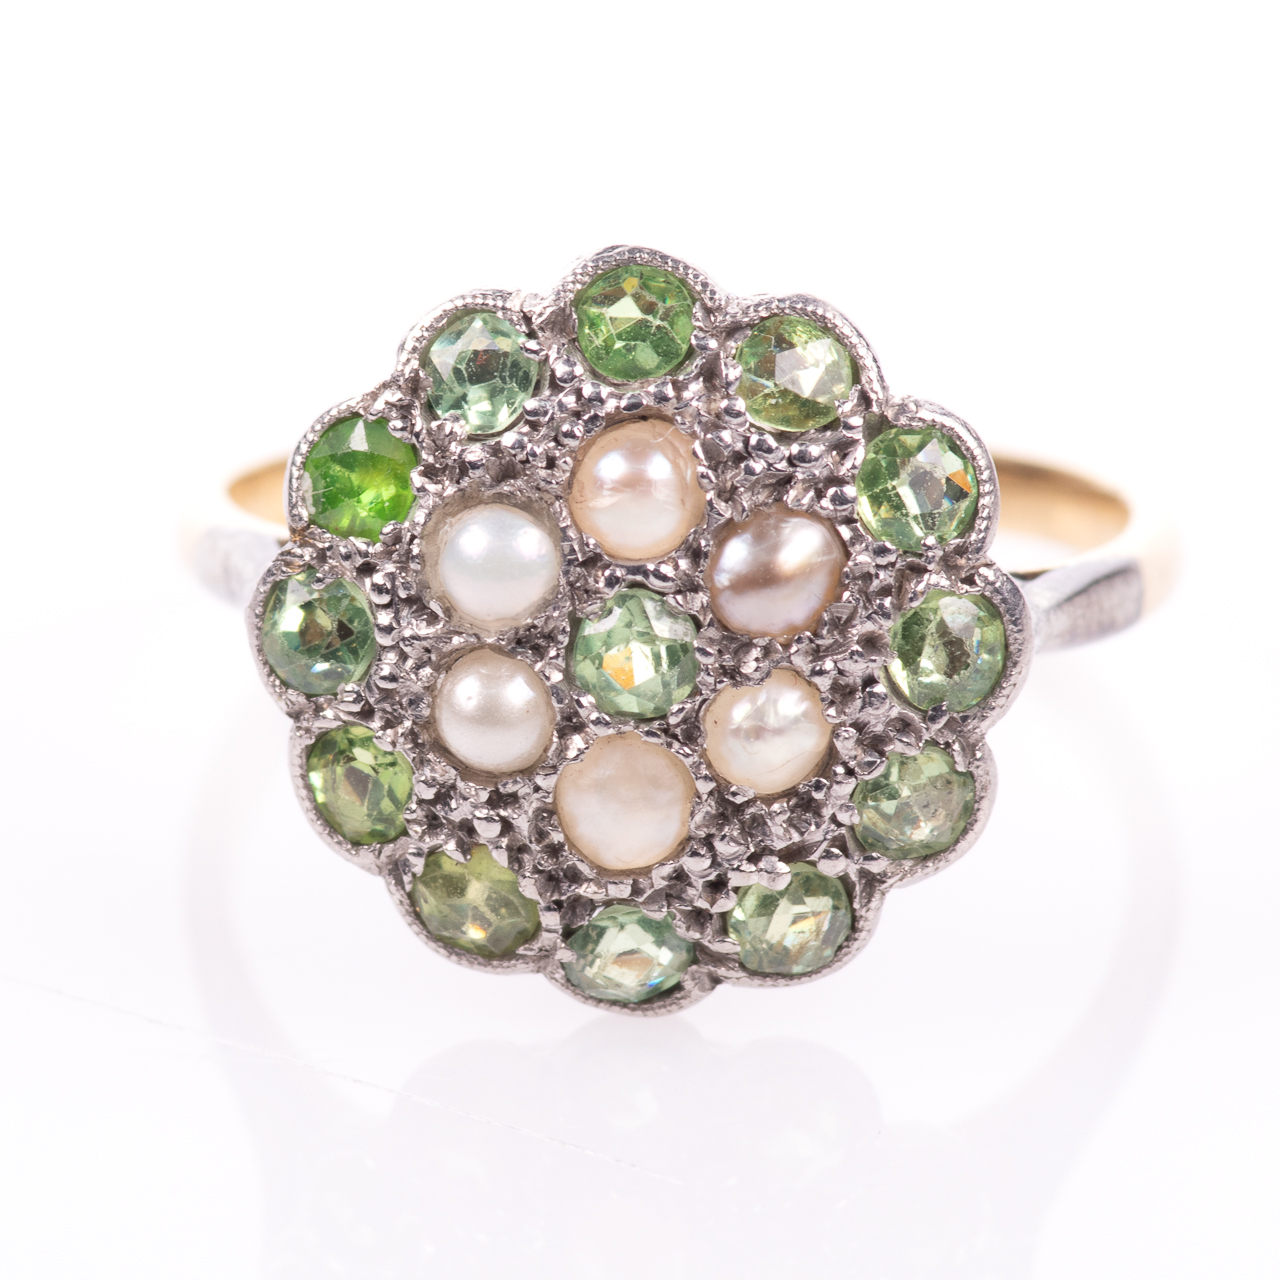 18ct Gold Victorian Peridot & Pearl Cluster Ring